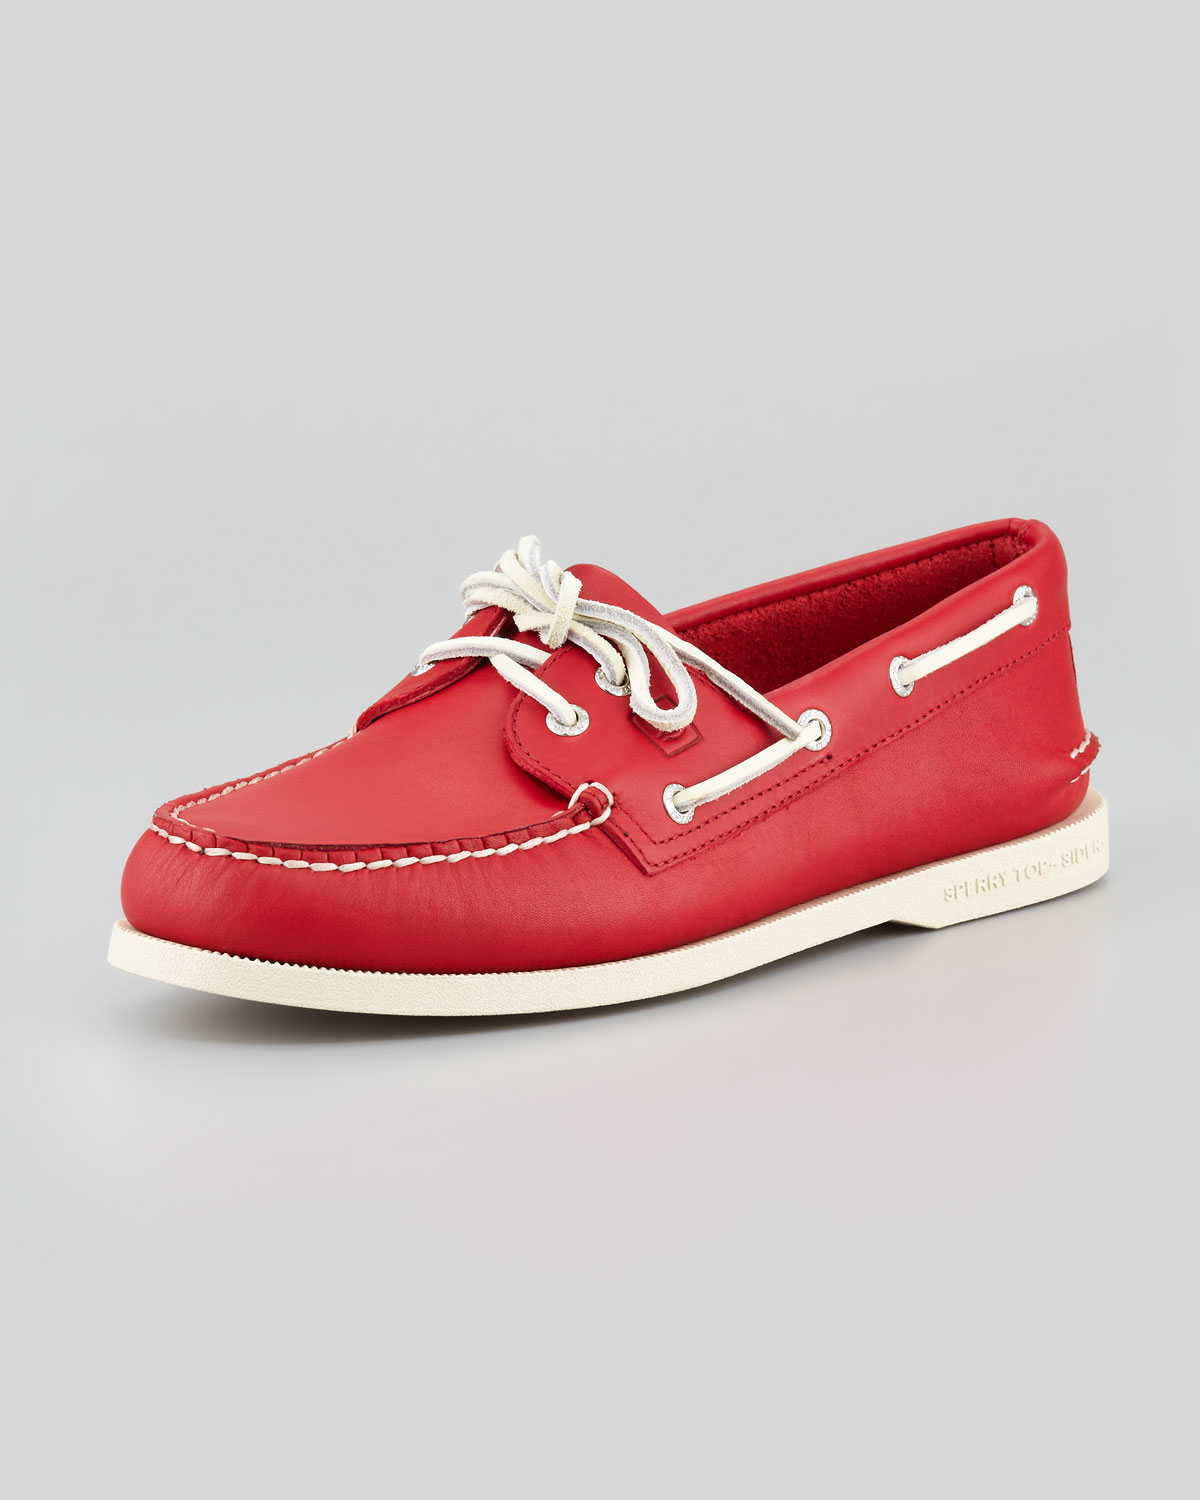 Sperry top-sider Authentic Original Boat Shoe Red in Red ...